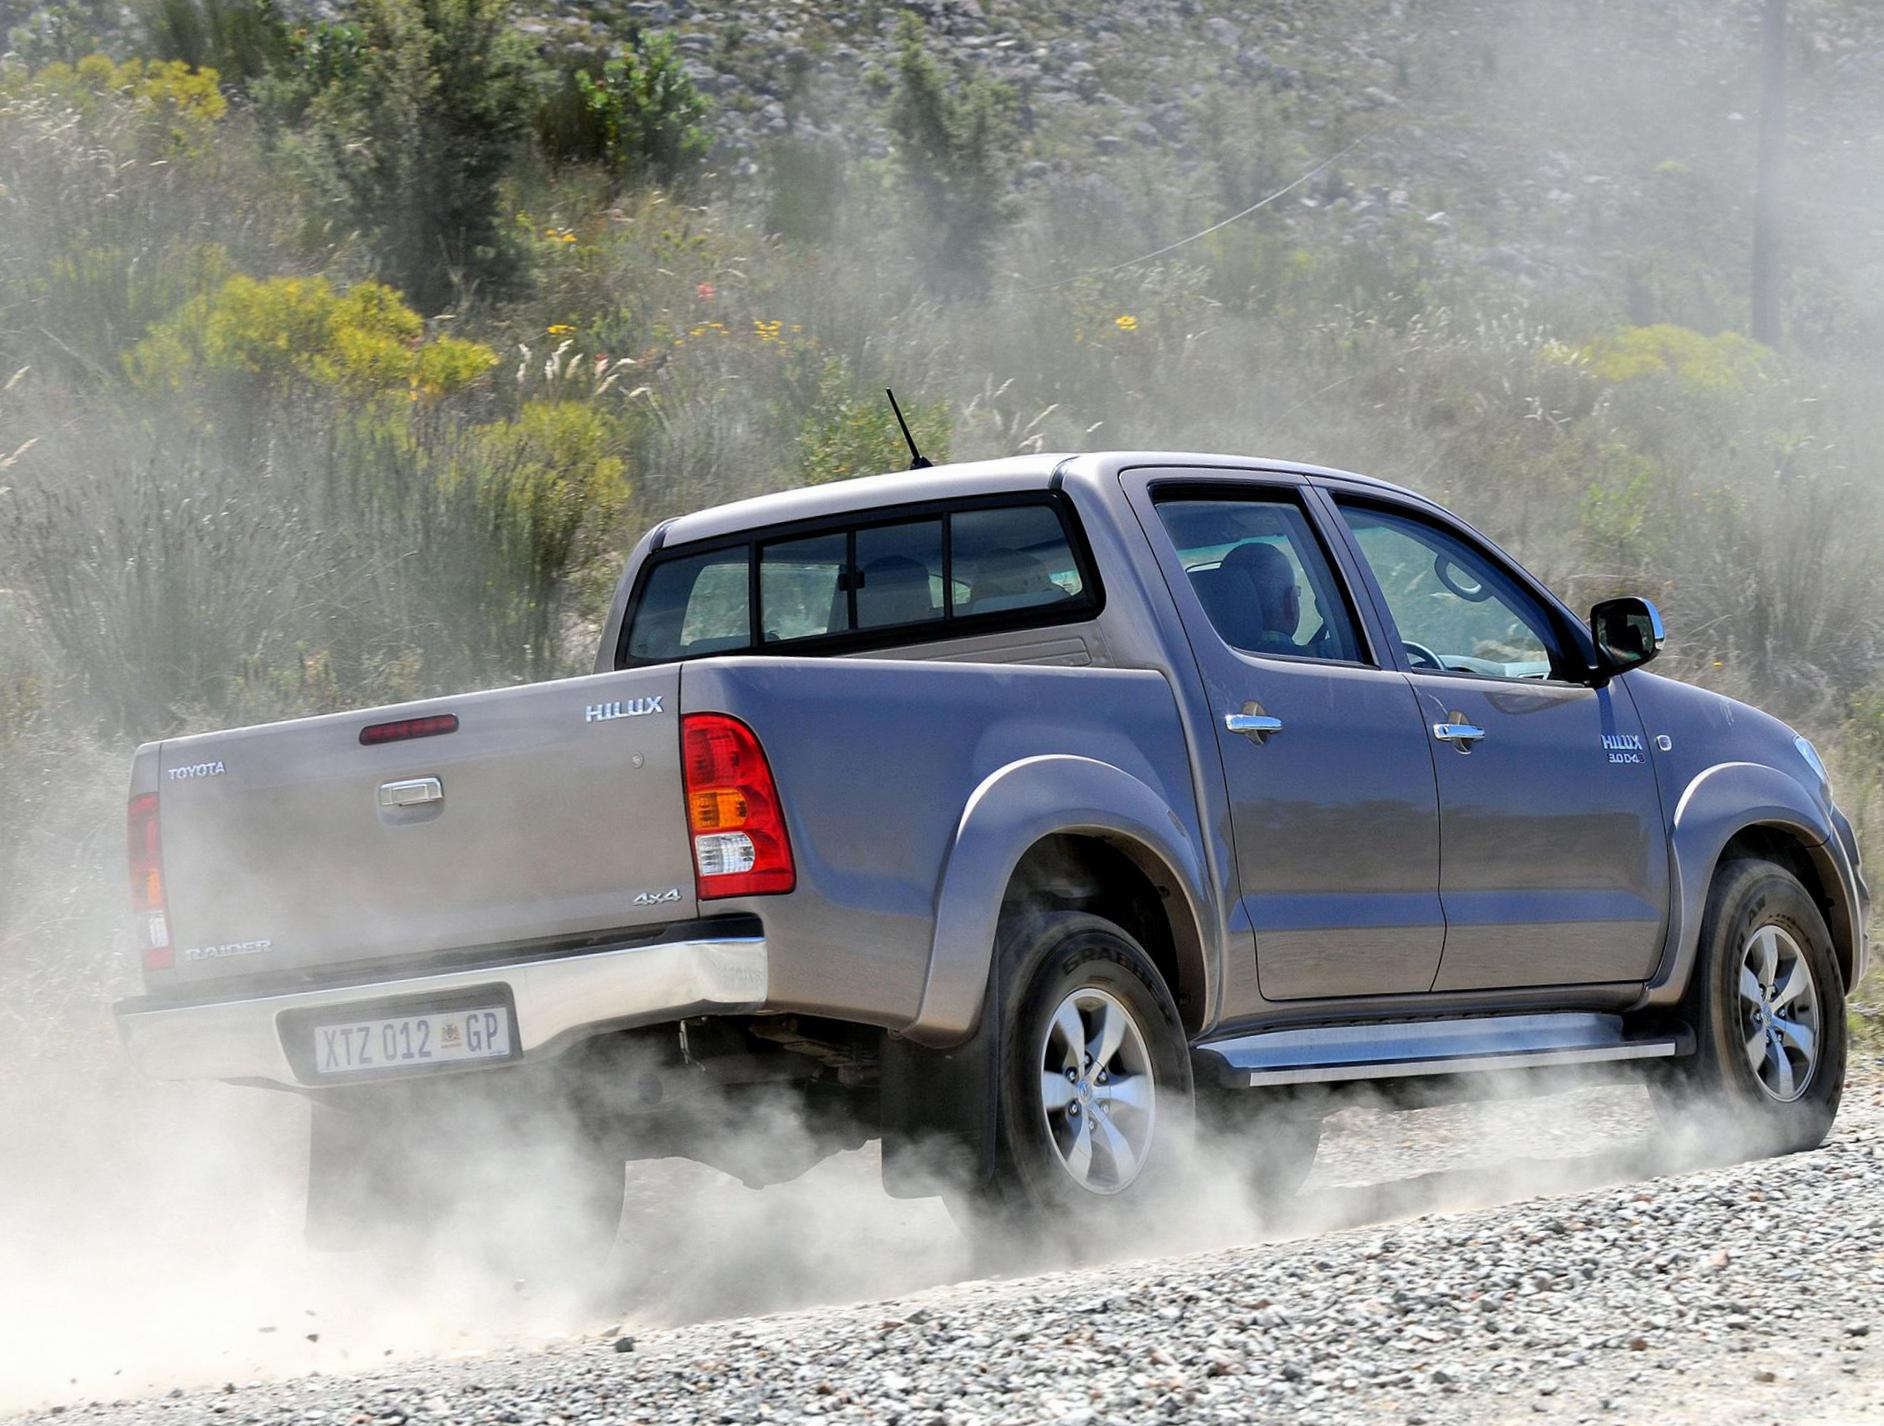 Hilux Double Cab Toyota for sale 2011